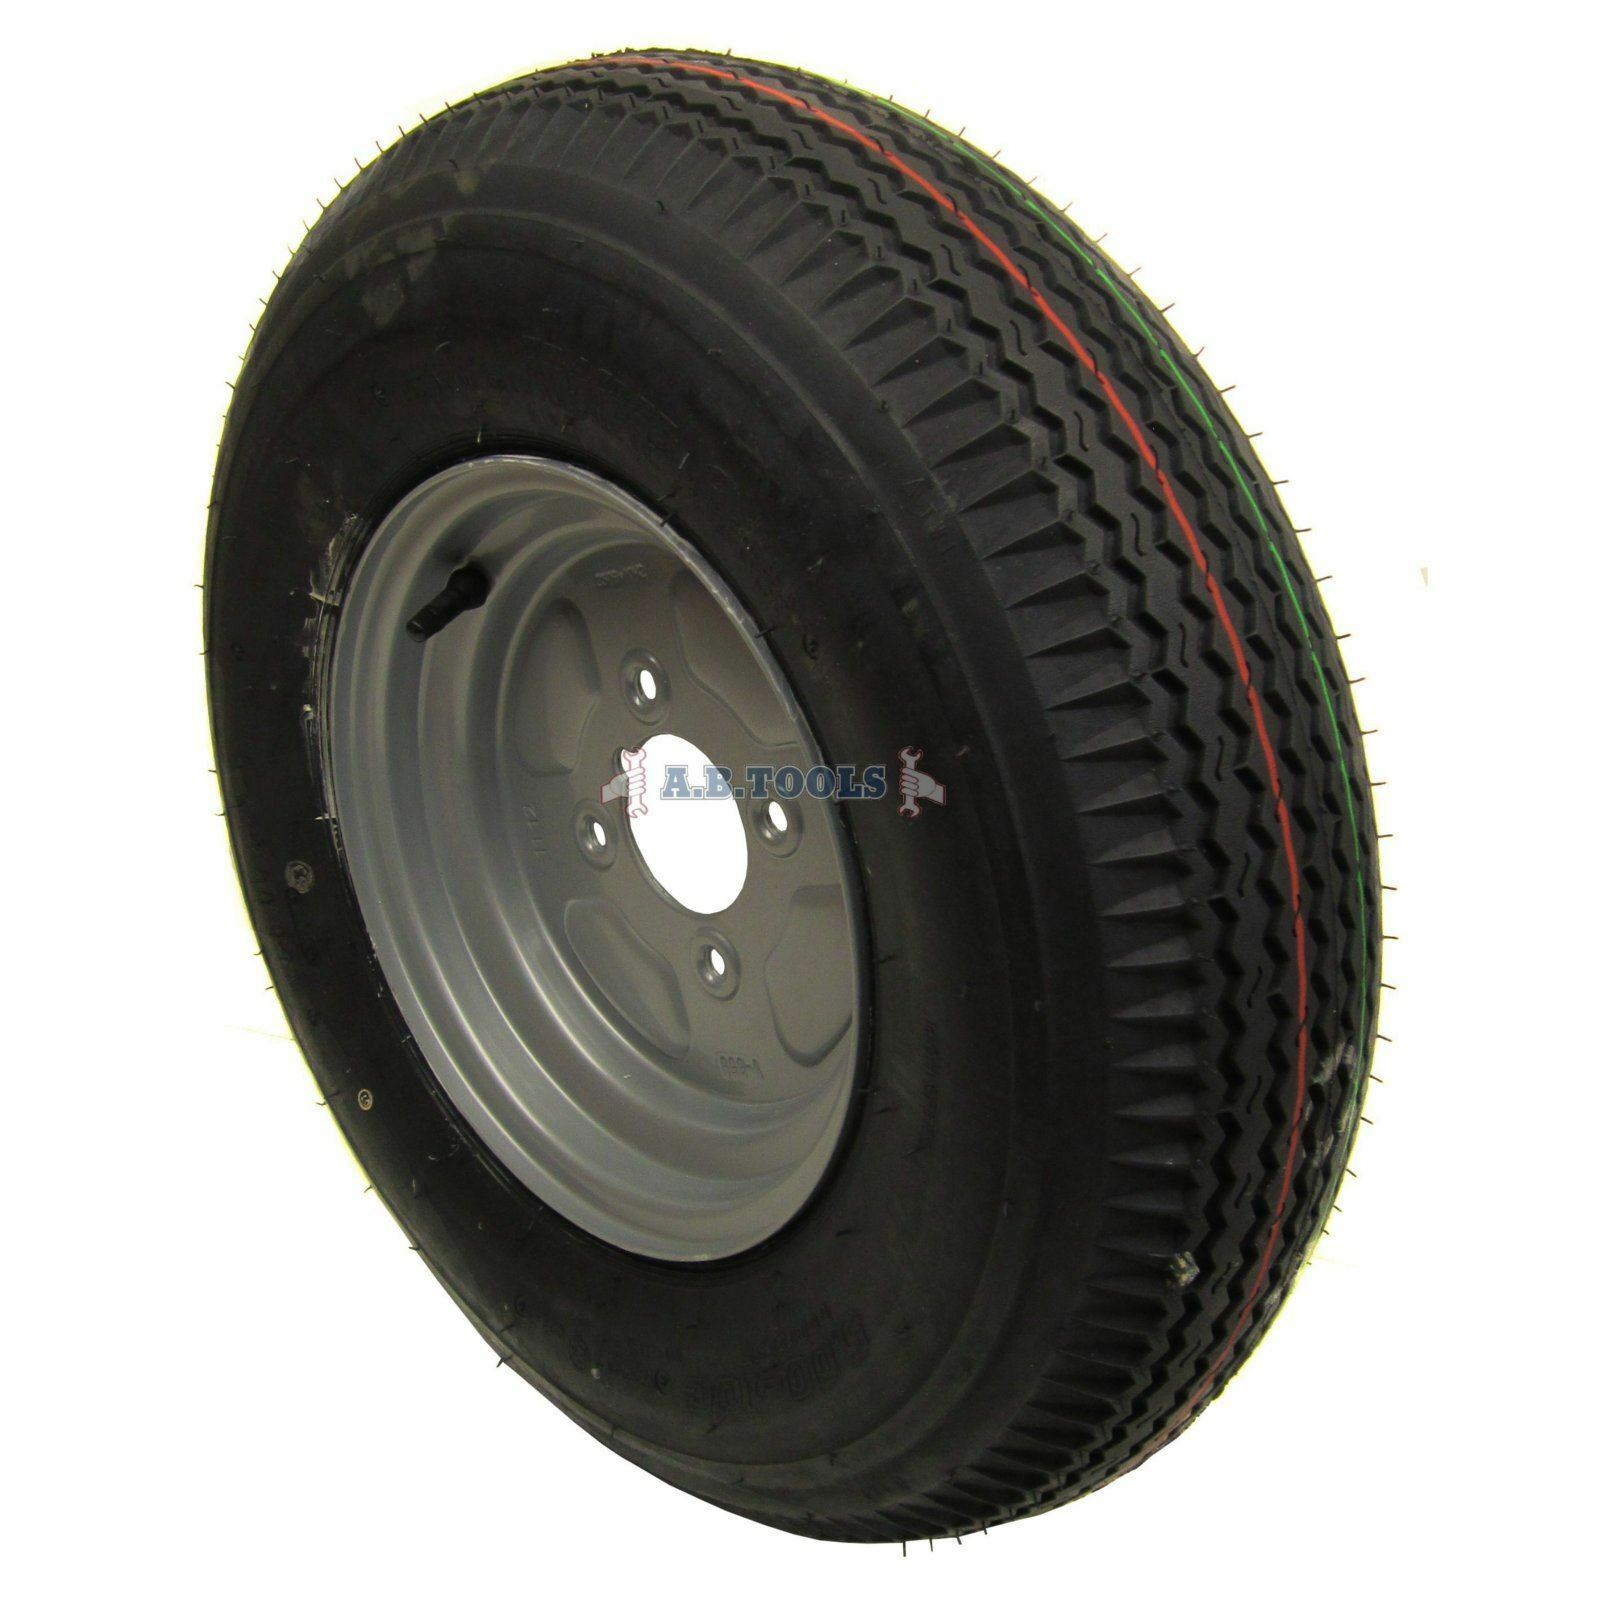 Trailer Wheel and Tyre 5.00 x 10  4ply 4 pcd TRSP11